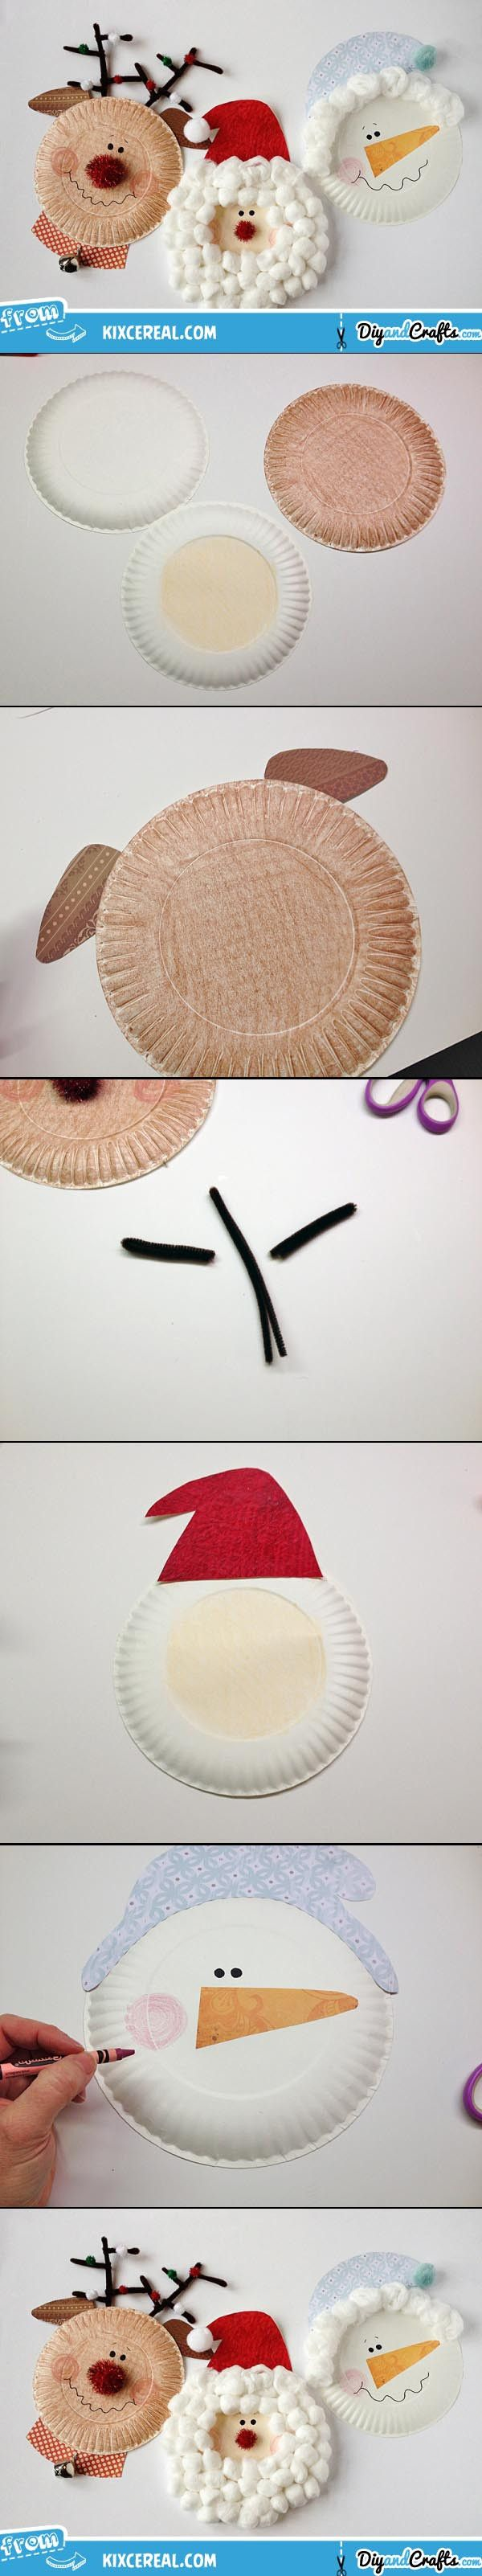 Paper Plate Christmas Characters- Santa, Rudolph, Snowman | #DIY